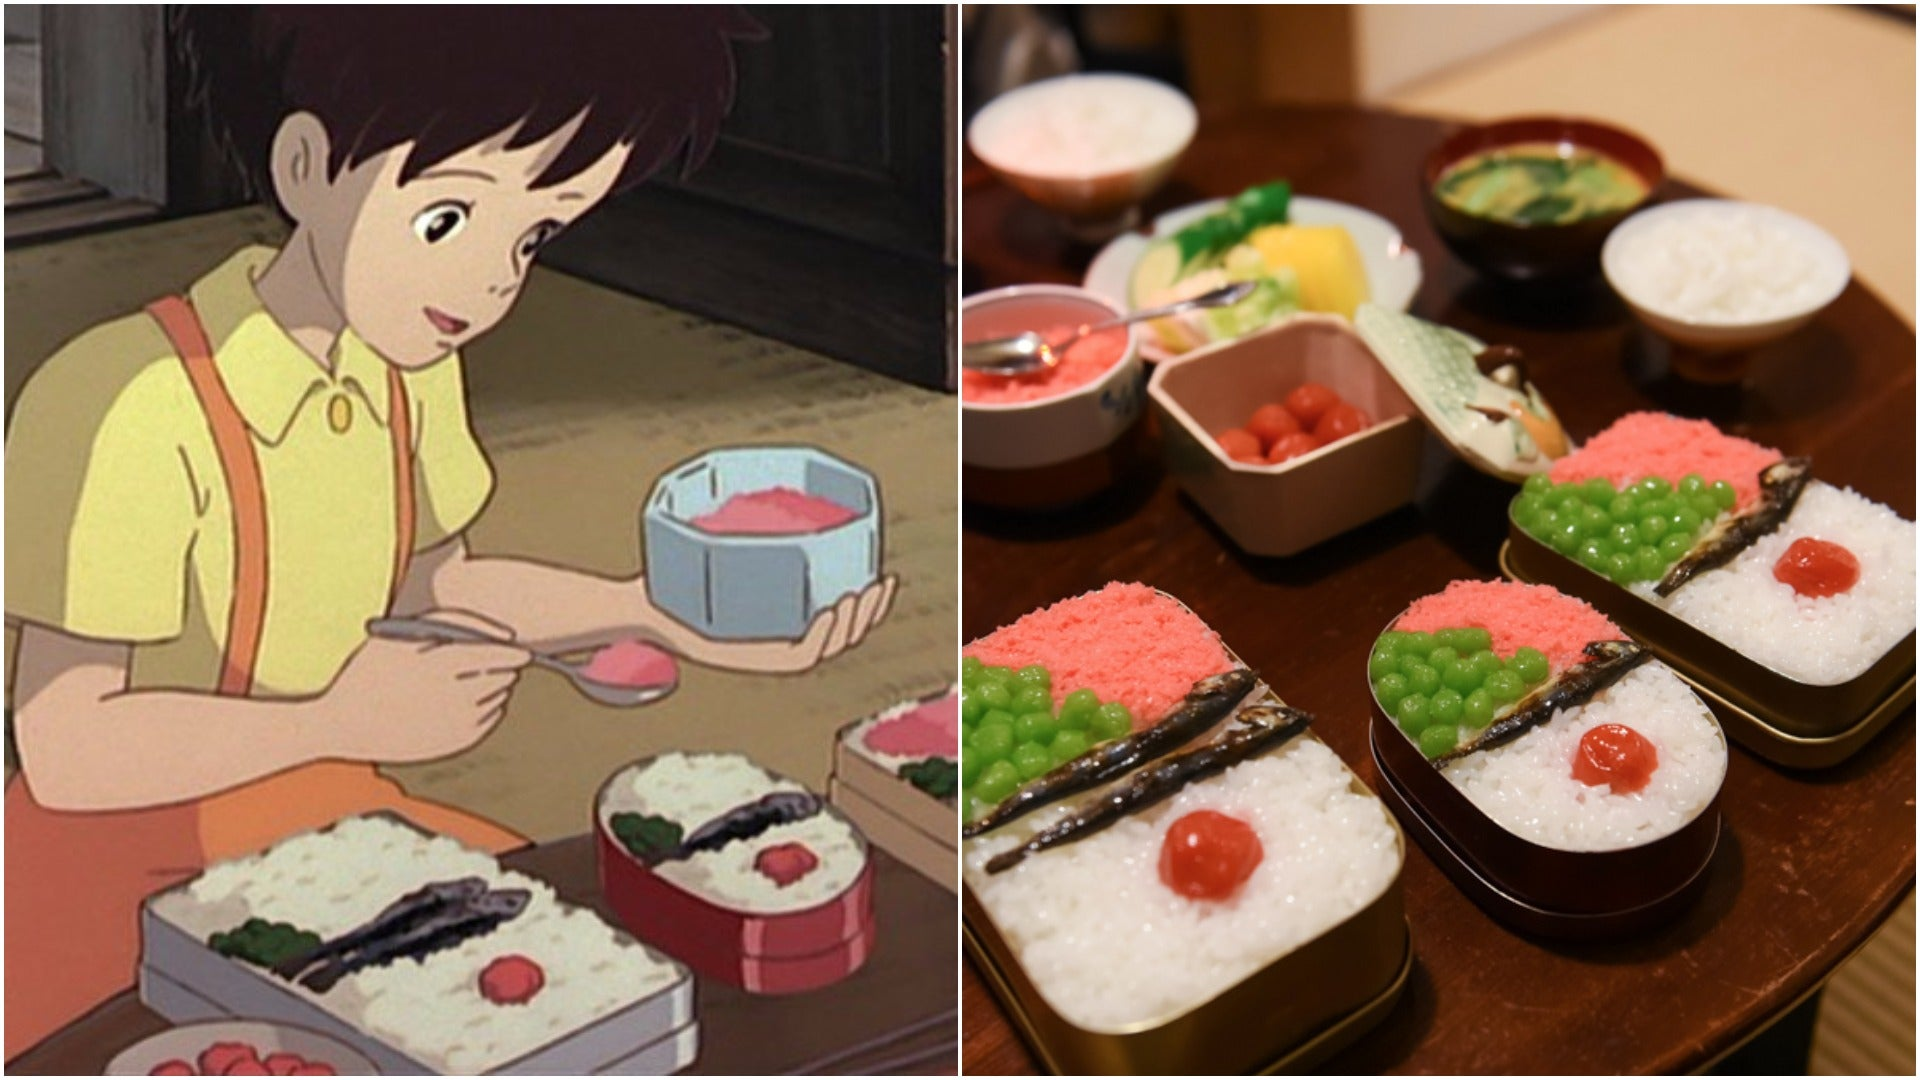 Studio ghibli celebrates delicious anime food kotaku for Decoration cuisine kawaii